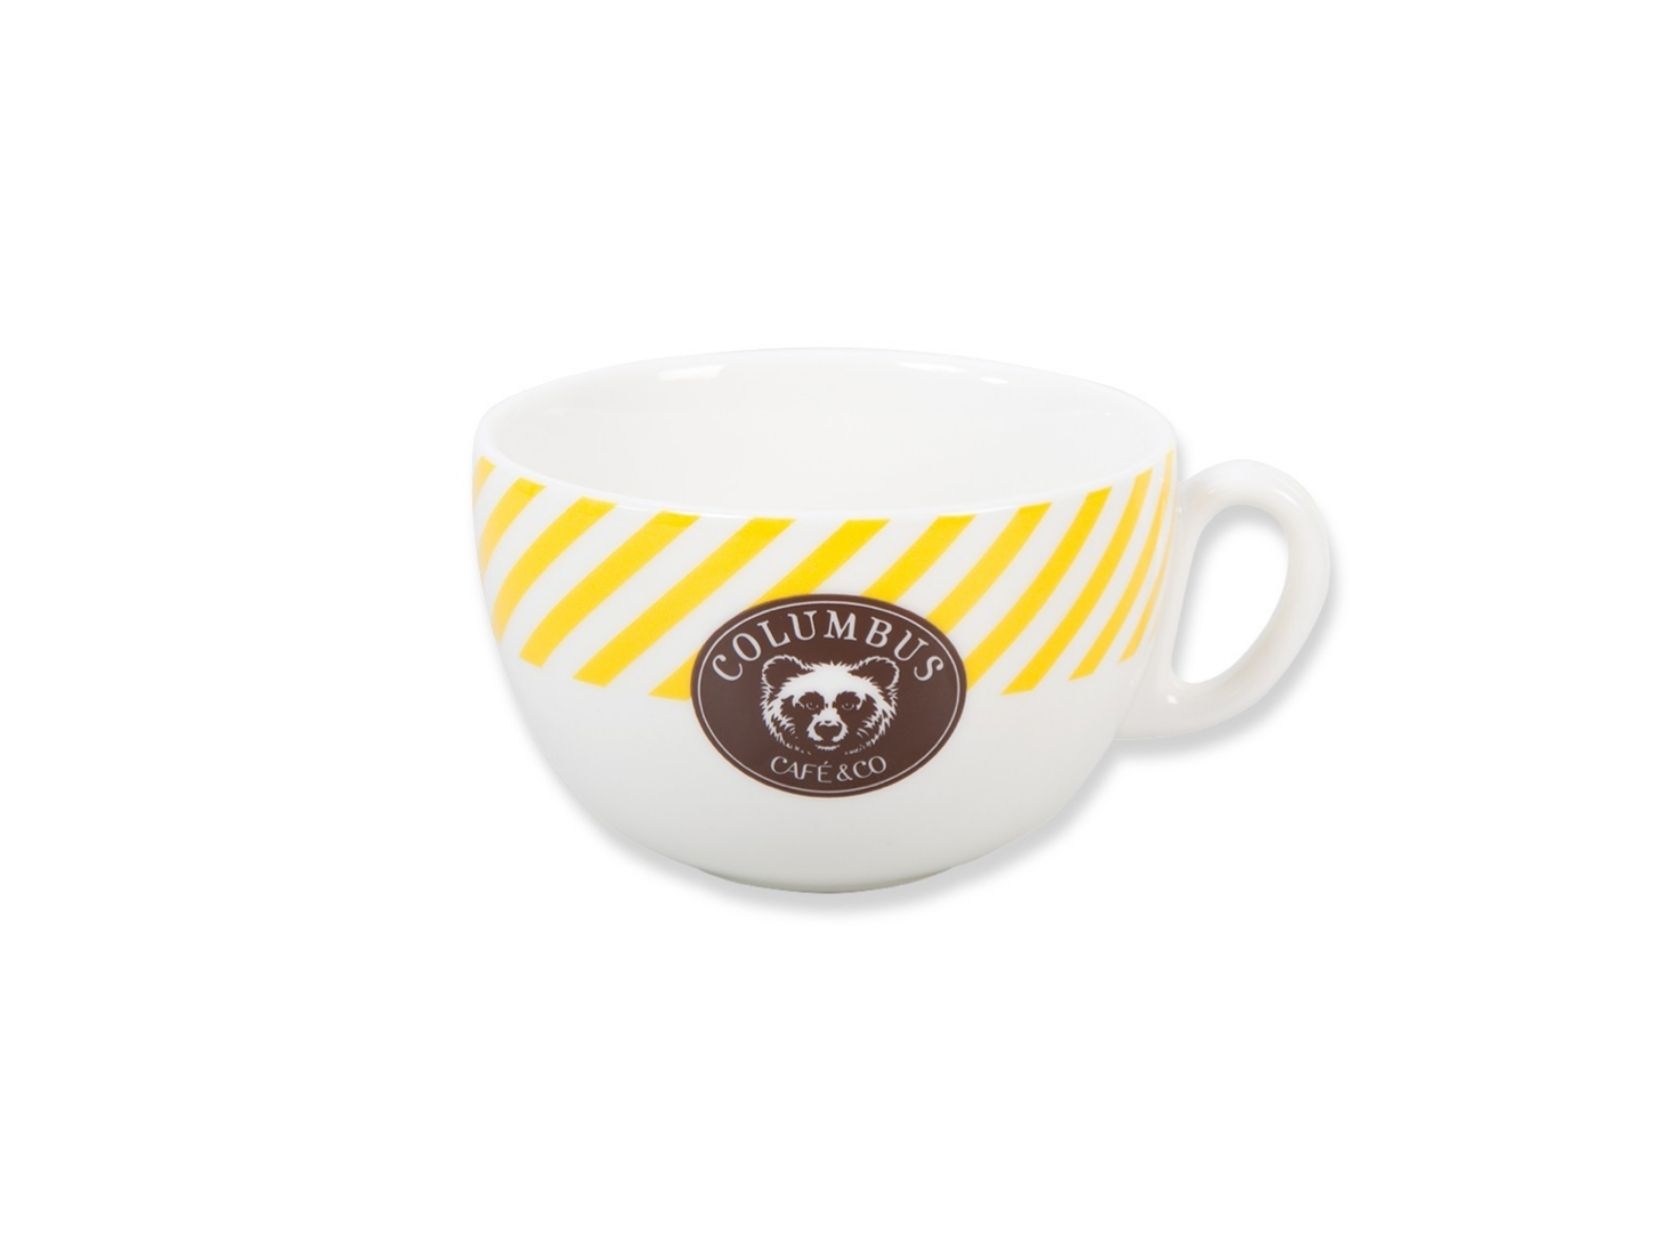 Columbus coffee cup – 45cl.